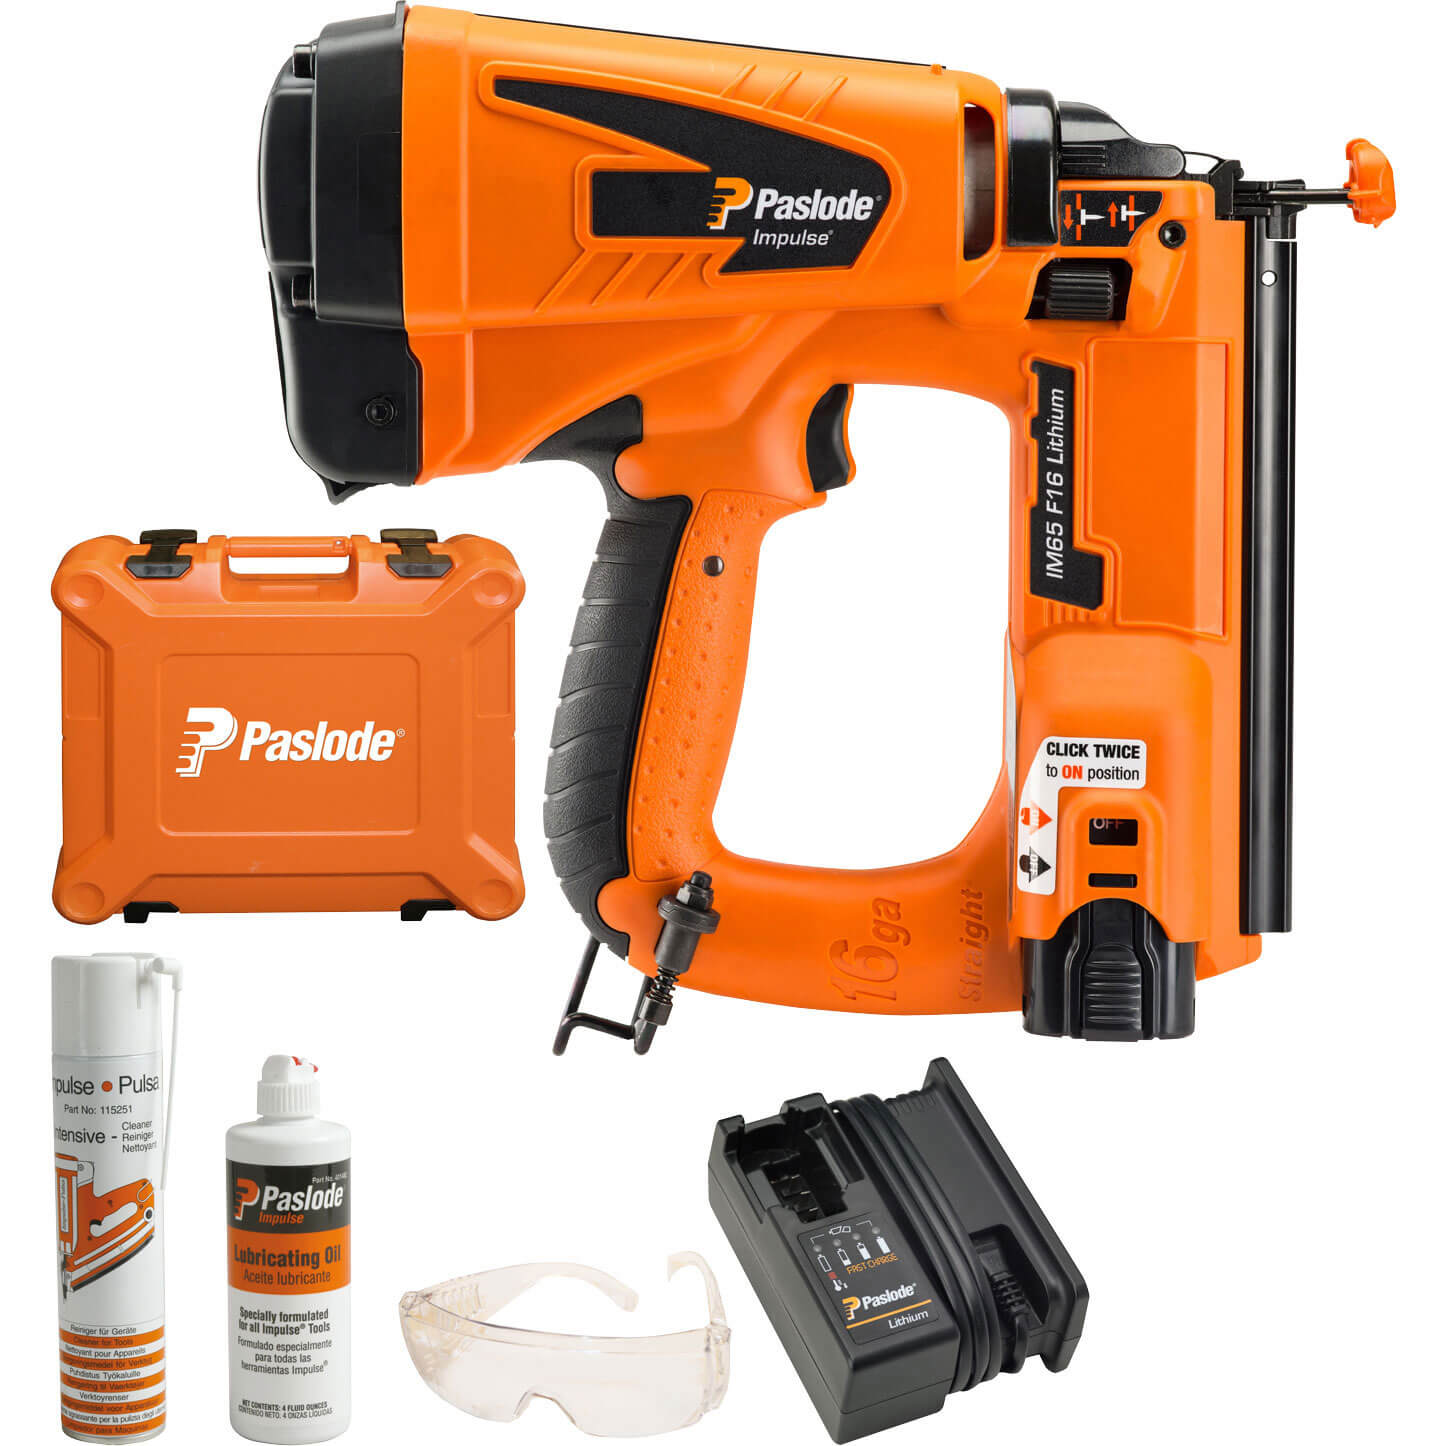 Paslode Impulse IM65 F16 Cordless Gas Brad Nail Gun 16 - 63mm with 1 Lithium Battery 1.25ah